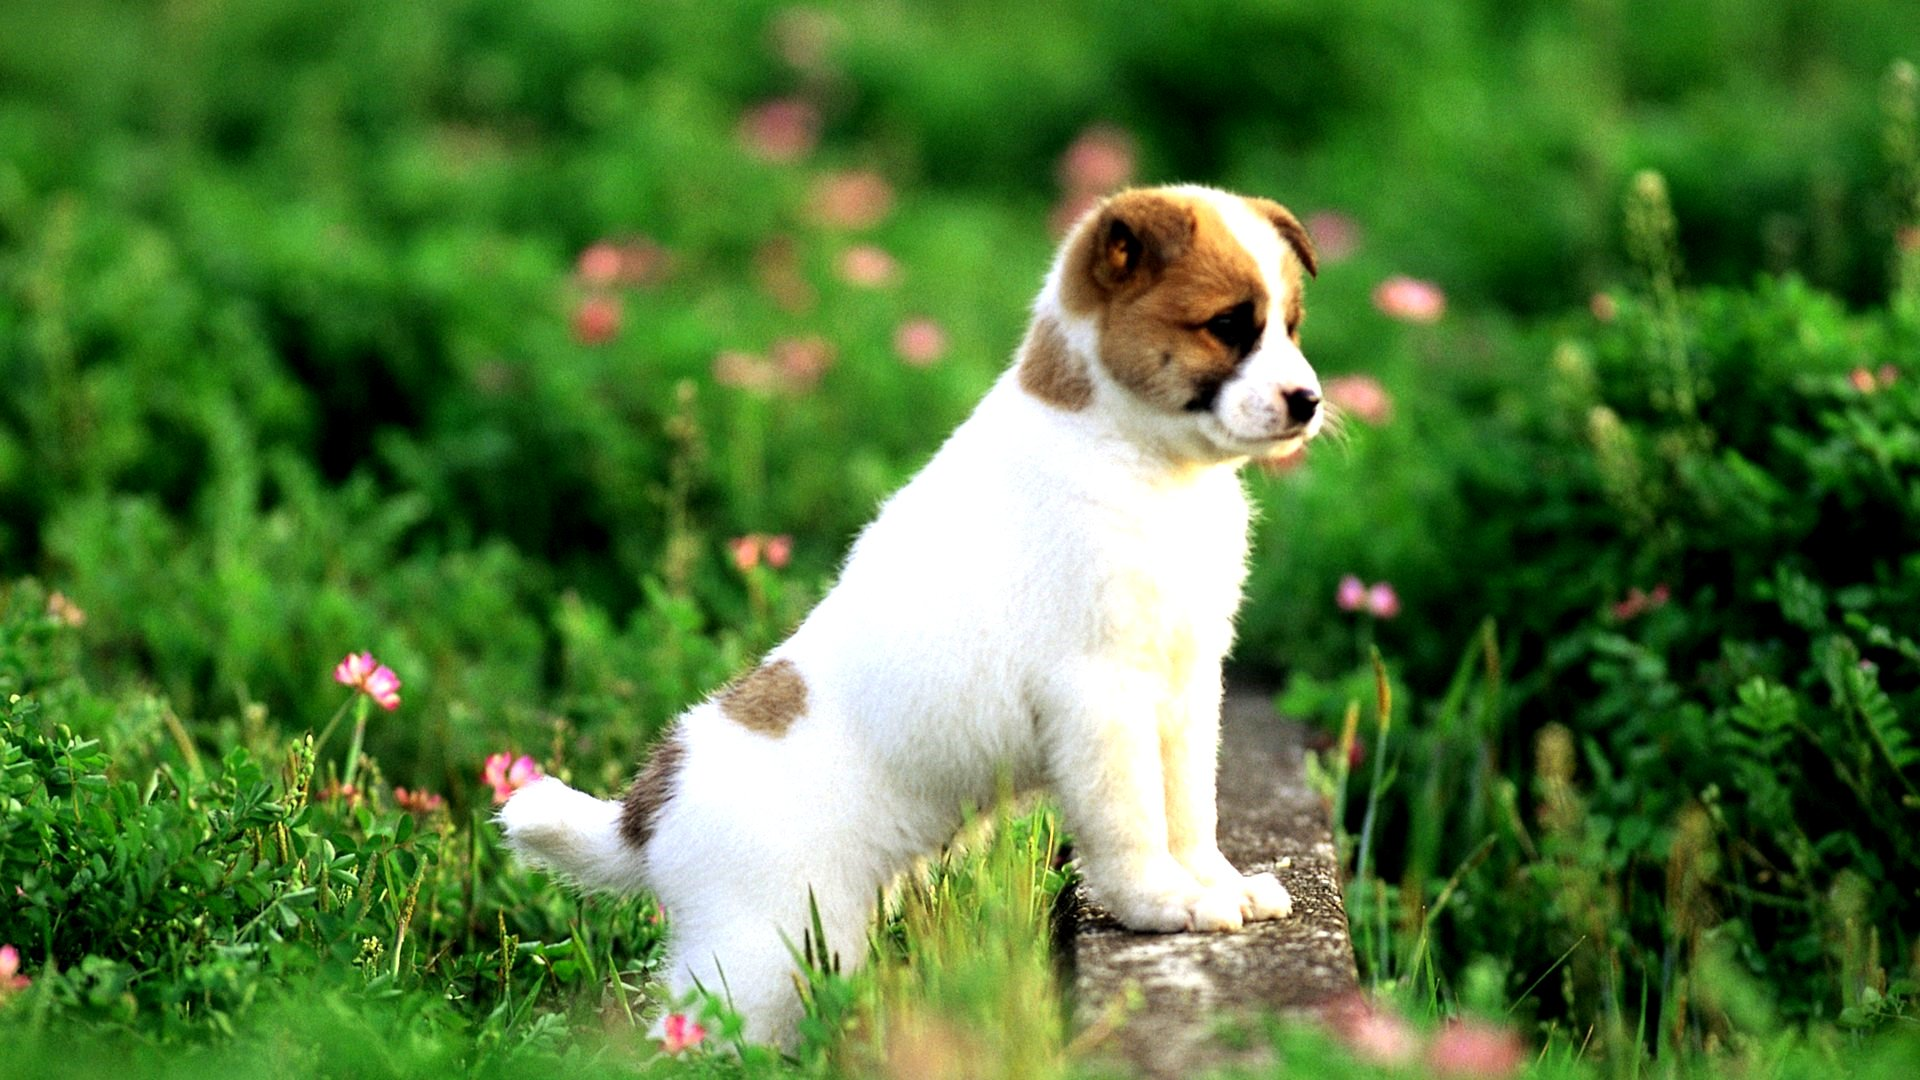 Puppy Images Free DownloadDog WallpaperCute Animal Wallpapers 1920x1080